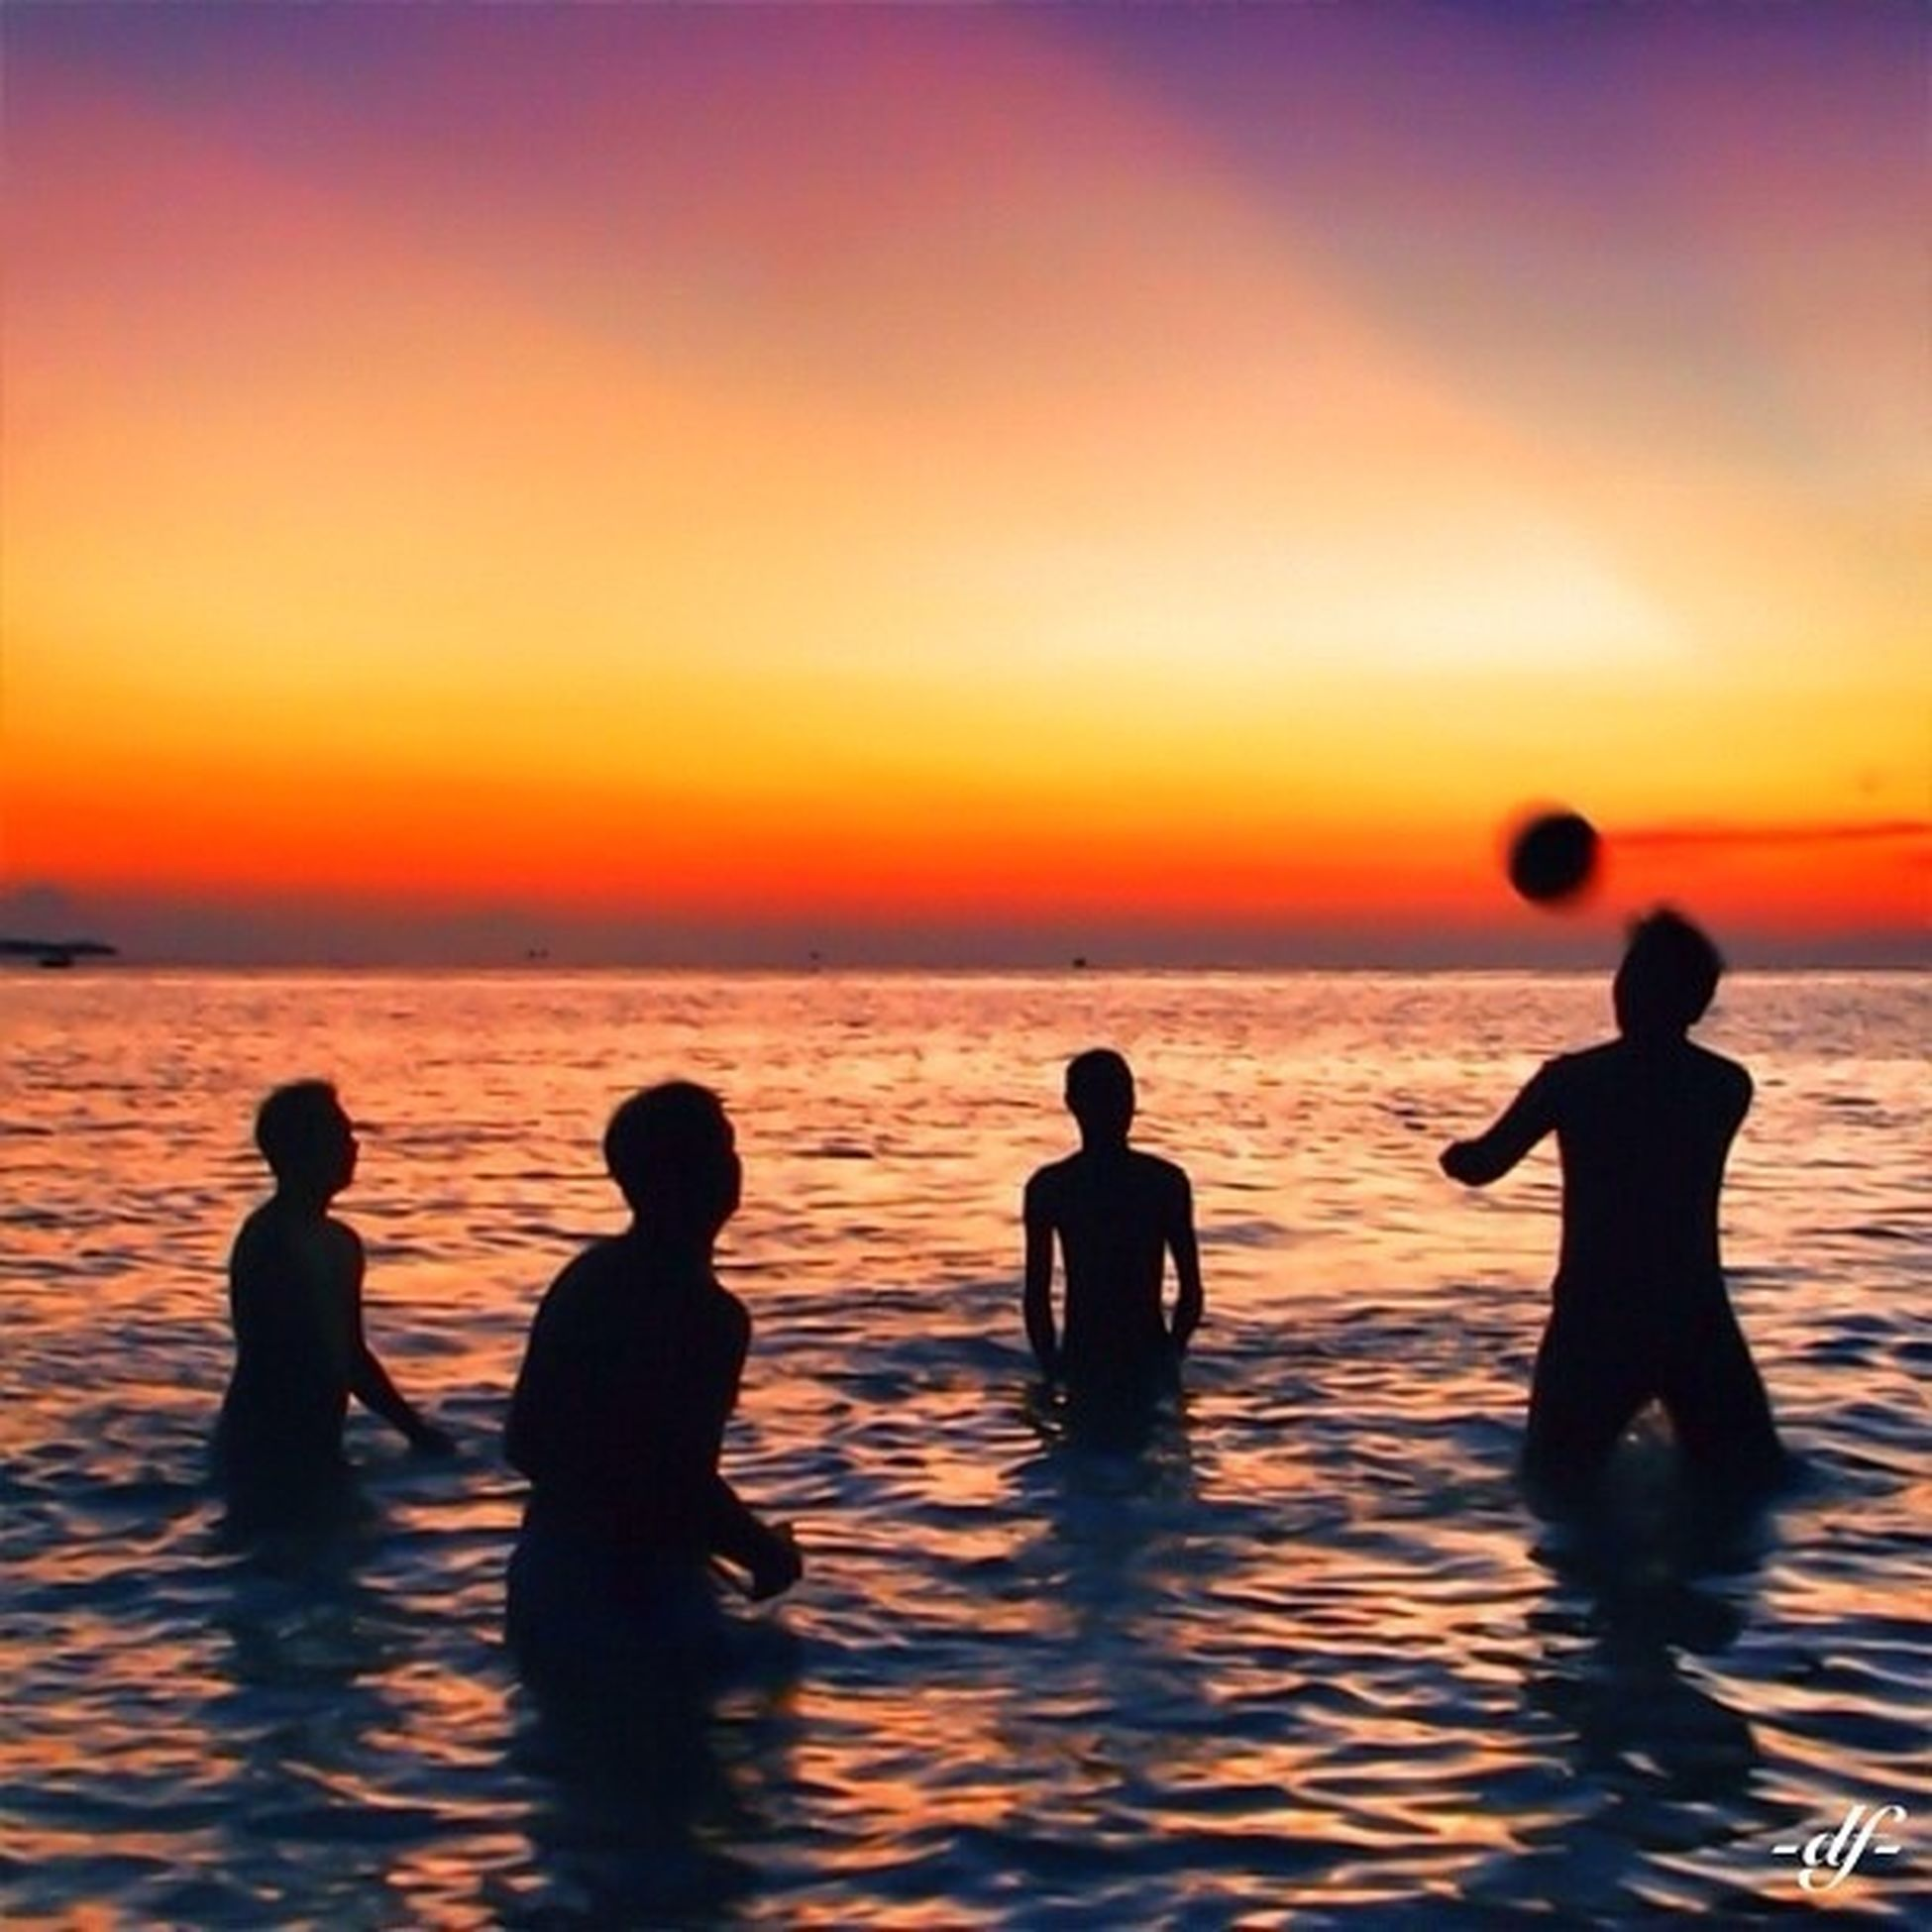 sunset, water, sea, togetherness, beach, horizon over water, leisure activity, silhouette, lifestyles, orange color, bonding, shore, vacations, men, person, sky, love, scenics